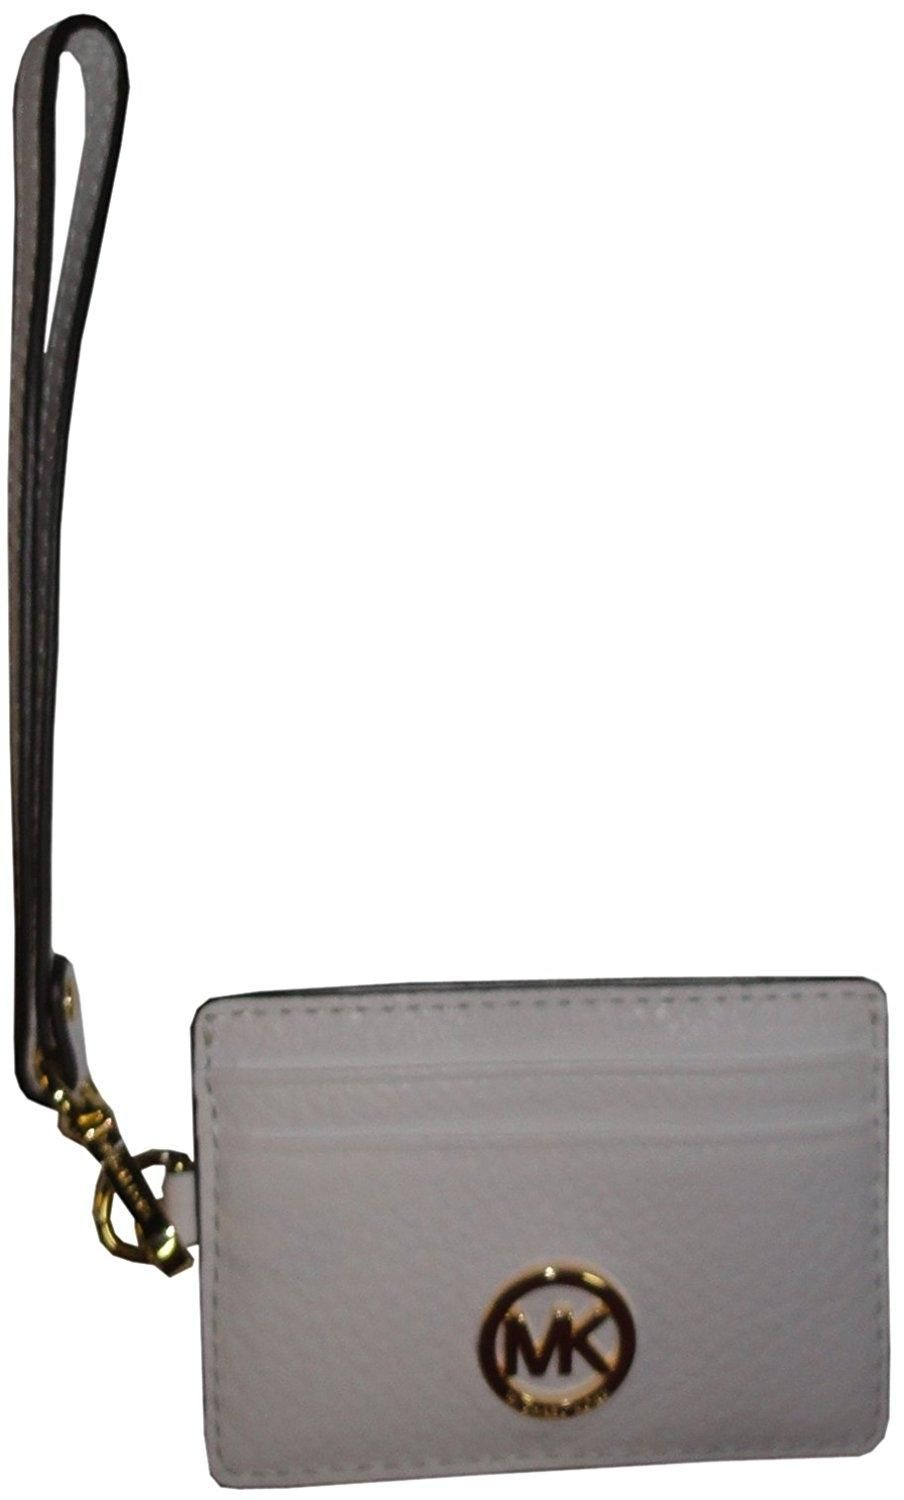 b7a3f2ff8f288c Free shipping and guaranteed authenticity on Michael Kors Fulton Metro Pass Case  ID Holder Leather Wristlet at Tradesy. Michael Kors Fulton Metro ...